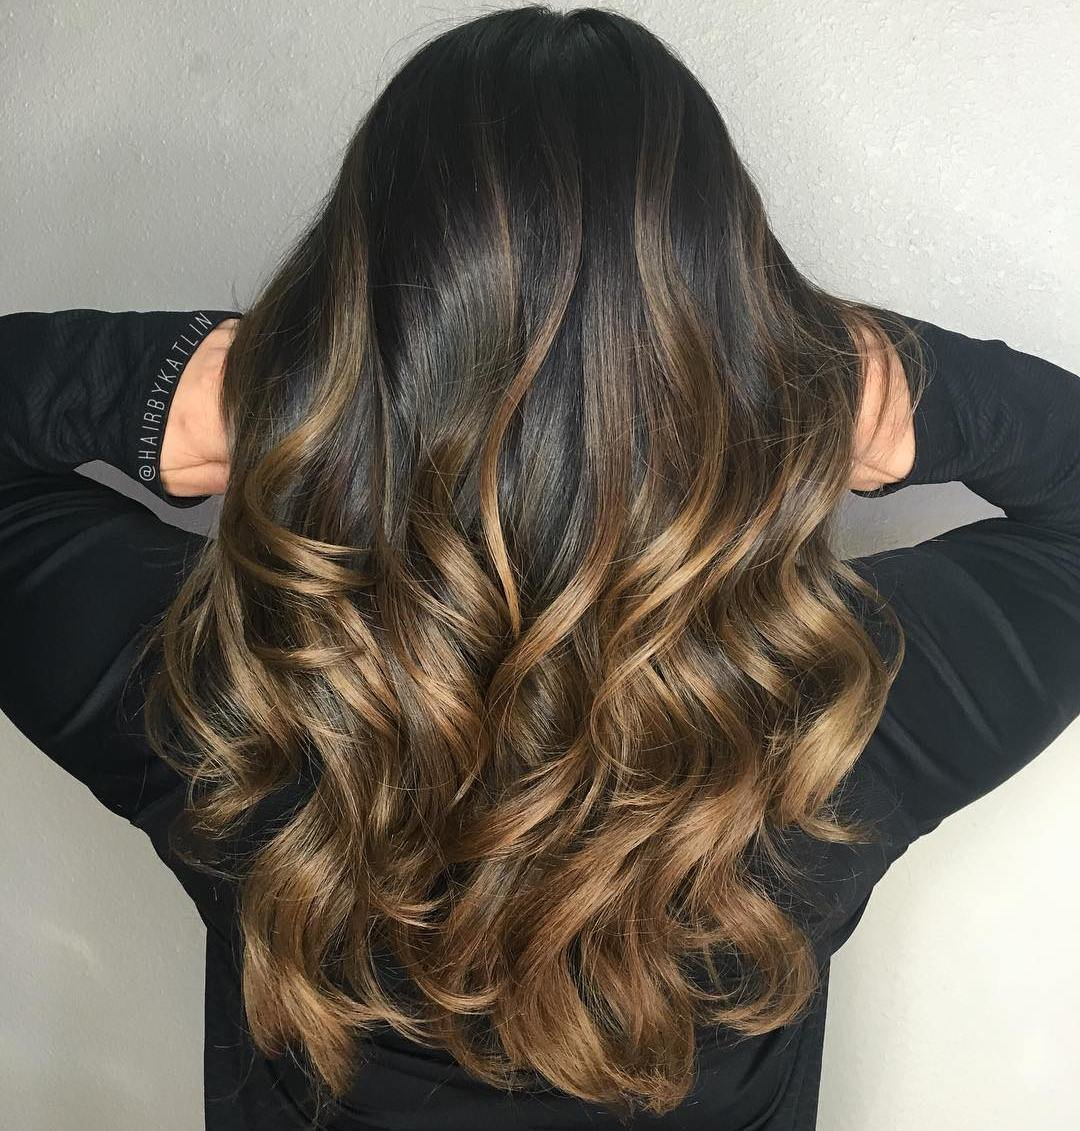 The Best 60 Best Ombre Hair Color Ideas For Blond Brown Red And Black Hair Pictures